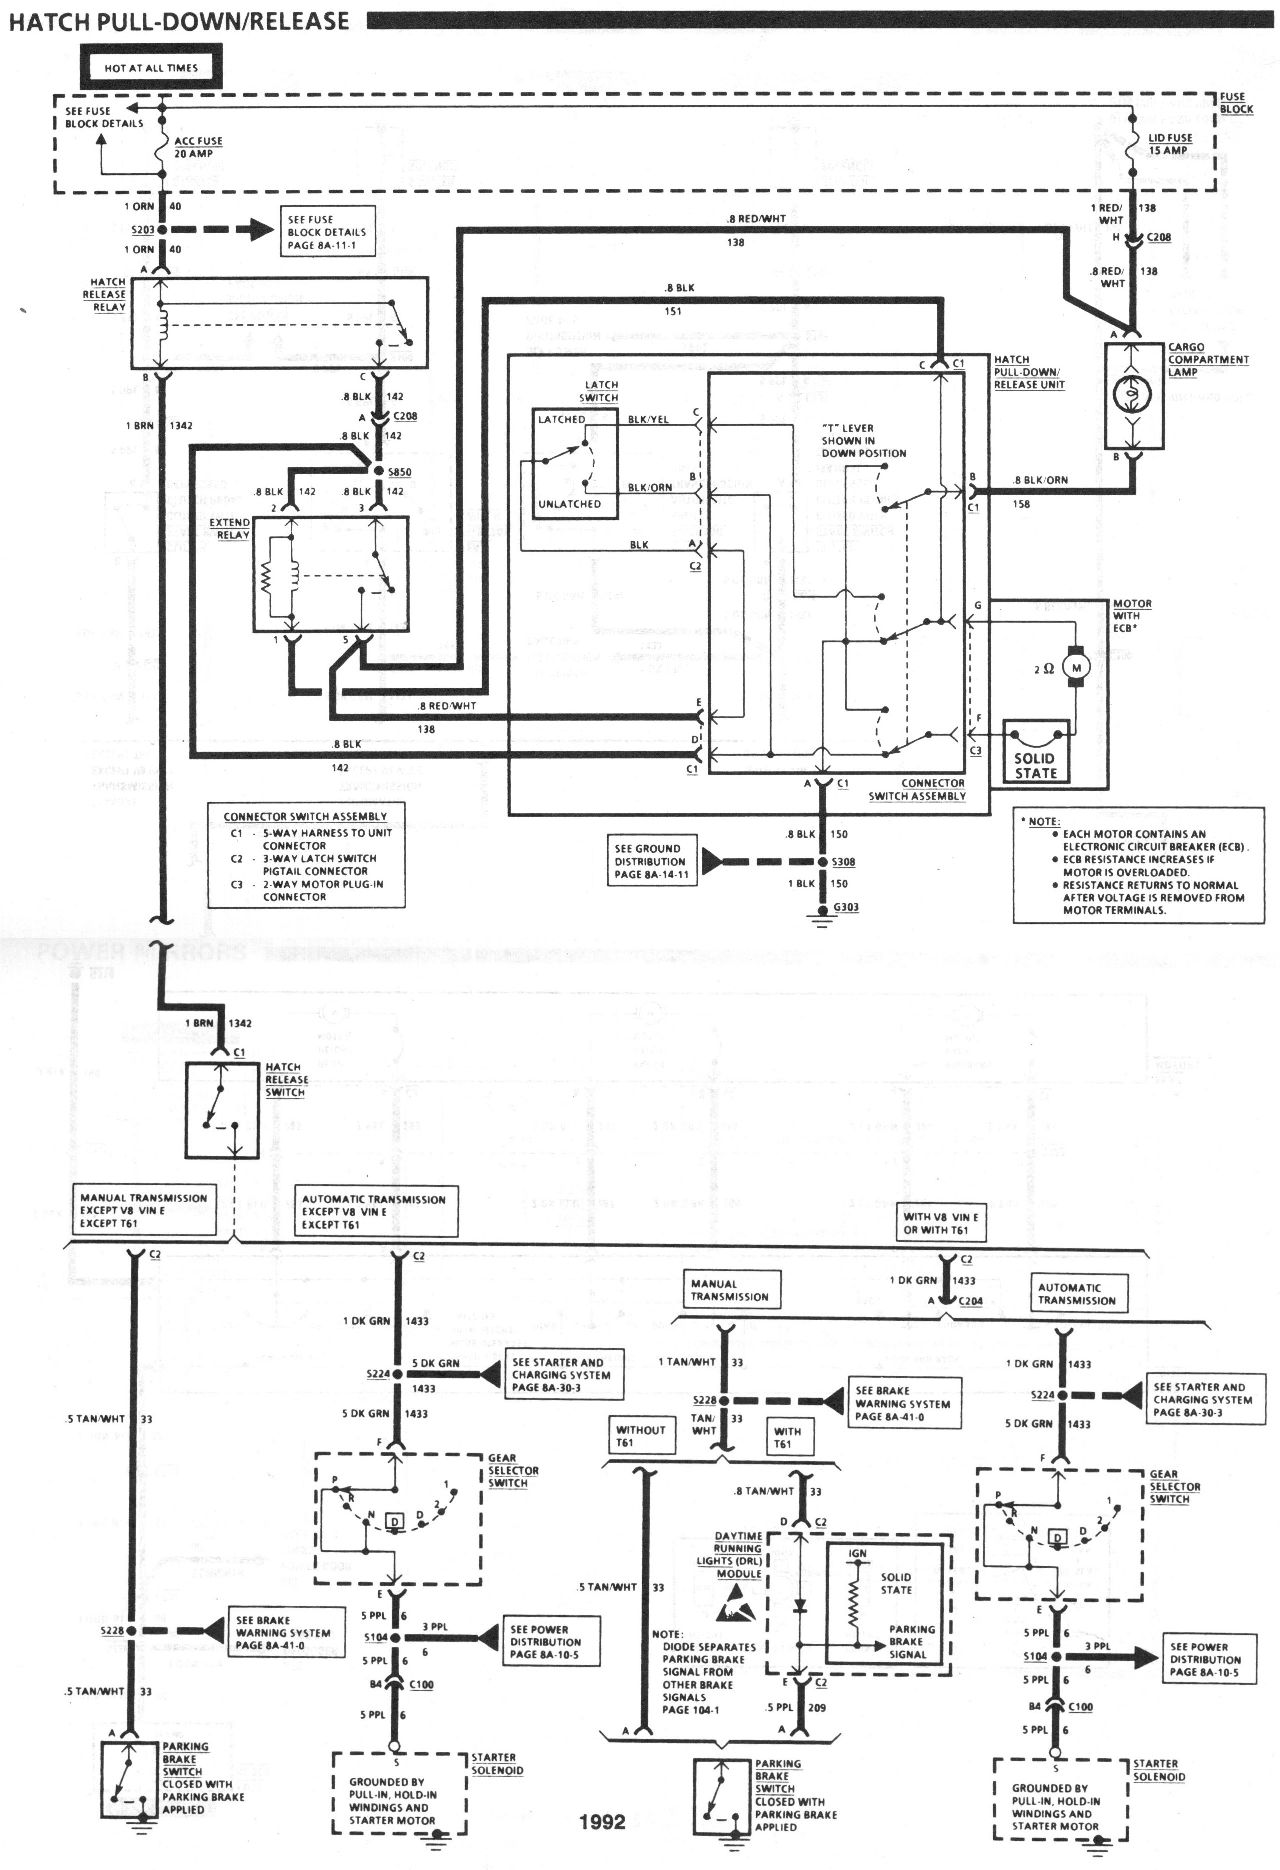 11 Pin Relay Schematic Diagram 1992 Camaro Rear Hatch Wiring Third Generation F Body